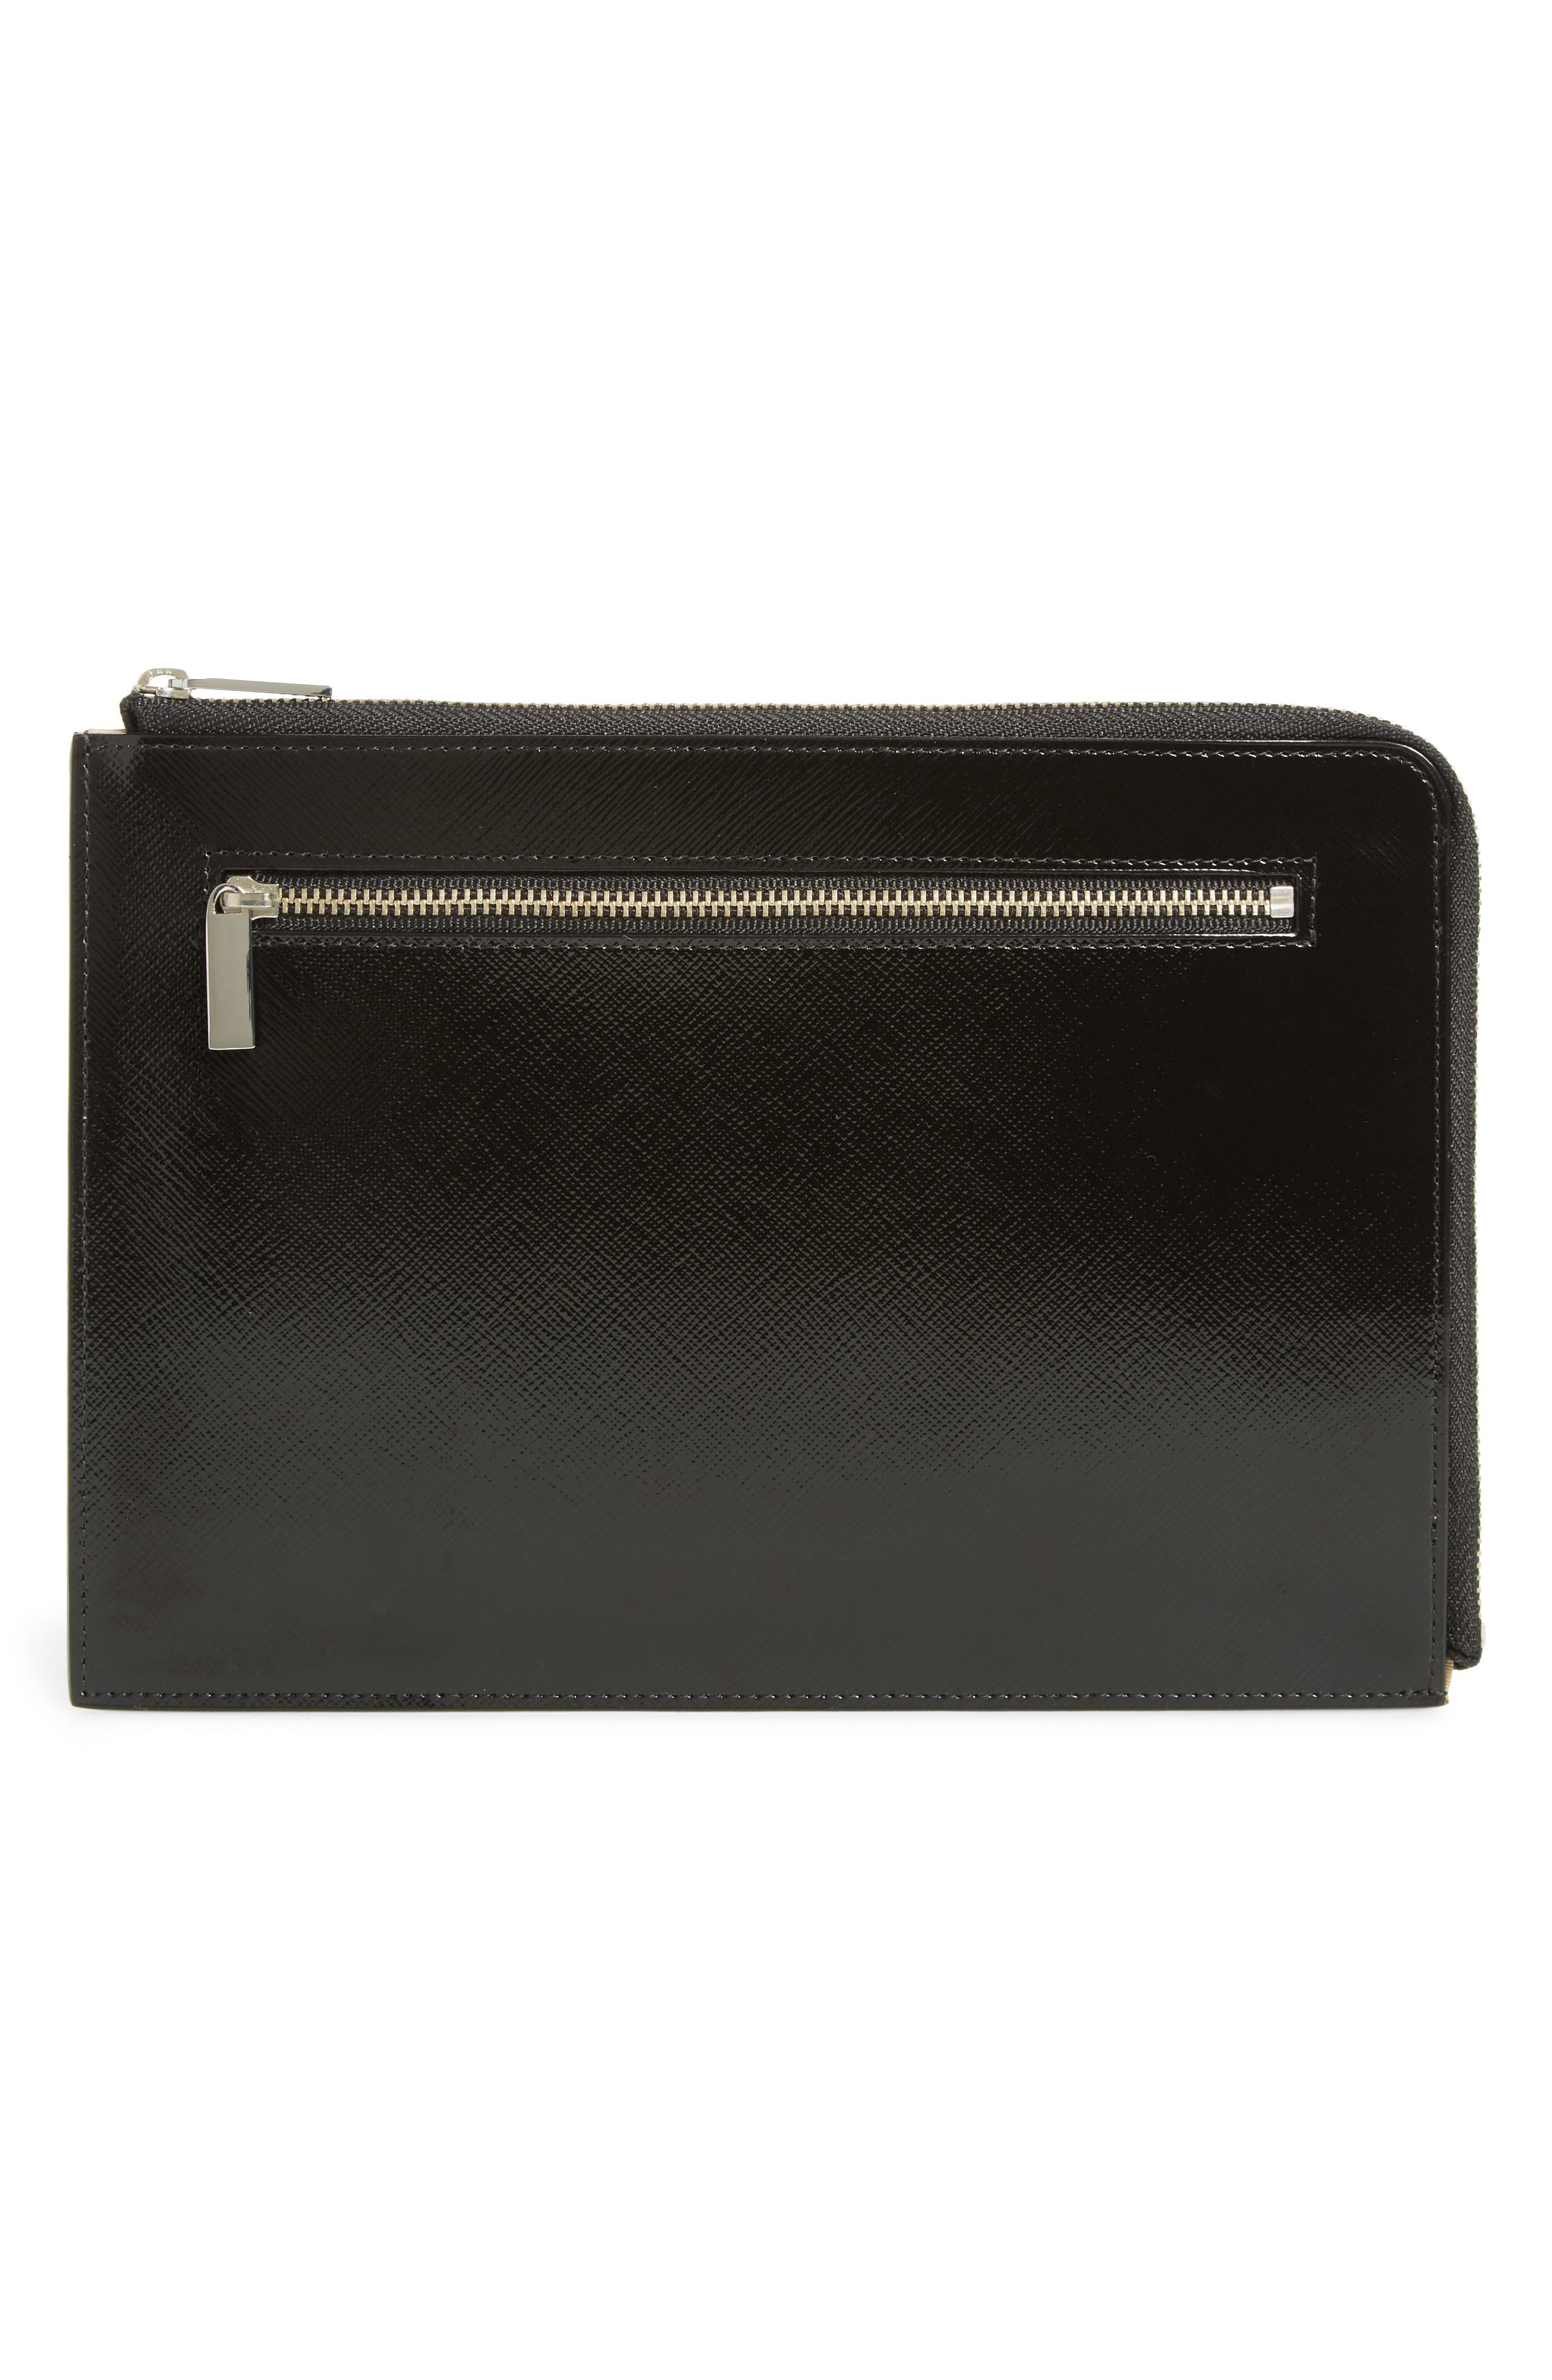 Nordstrom Leather Zip Pouch